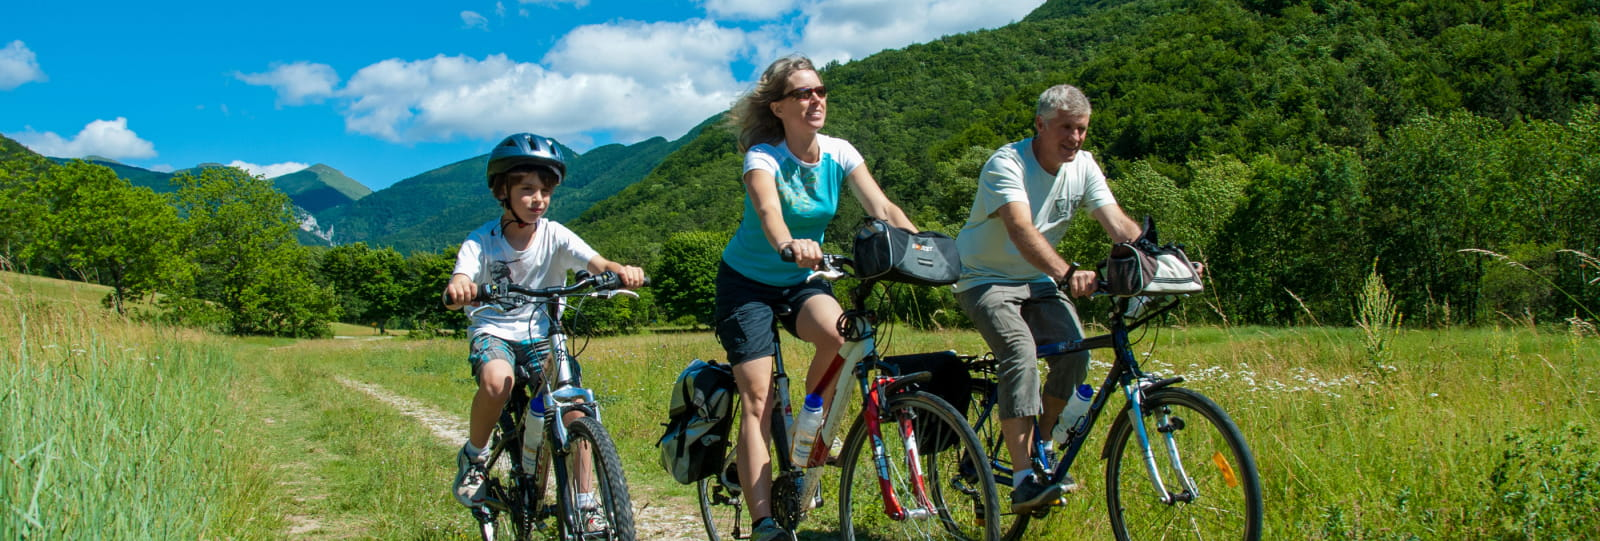 Cycling: a bicycle ride in family along the river Drôme